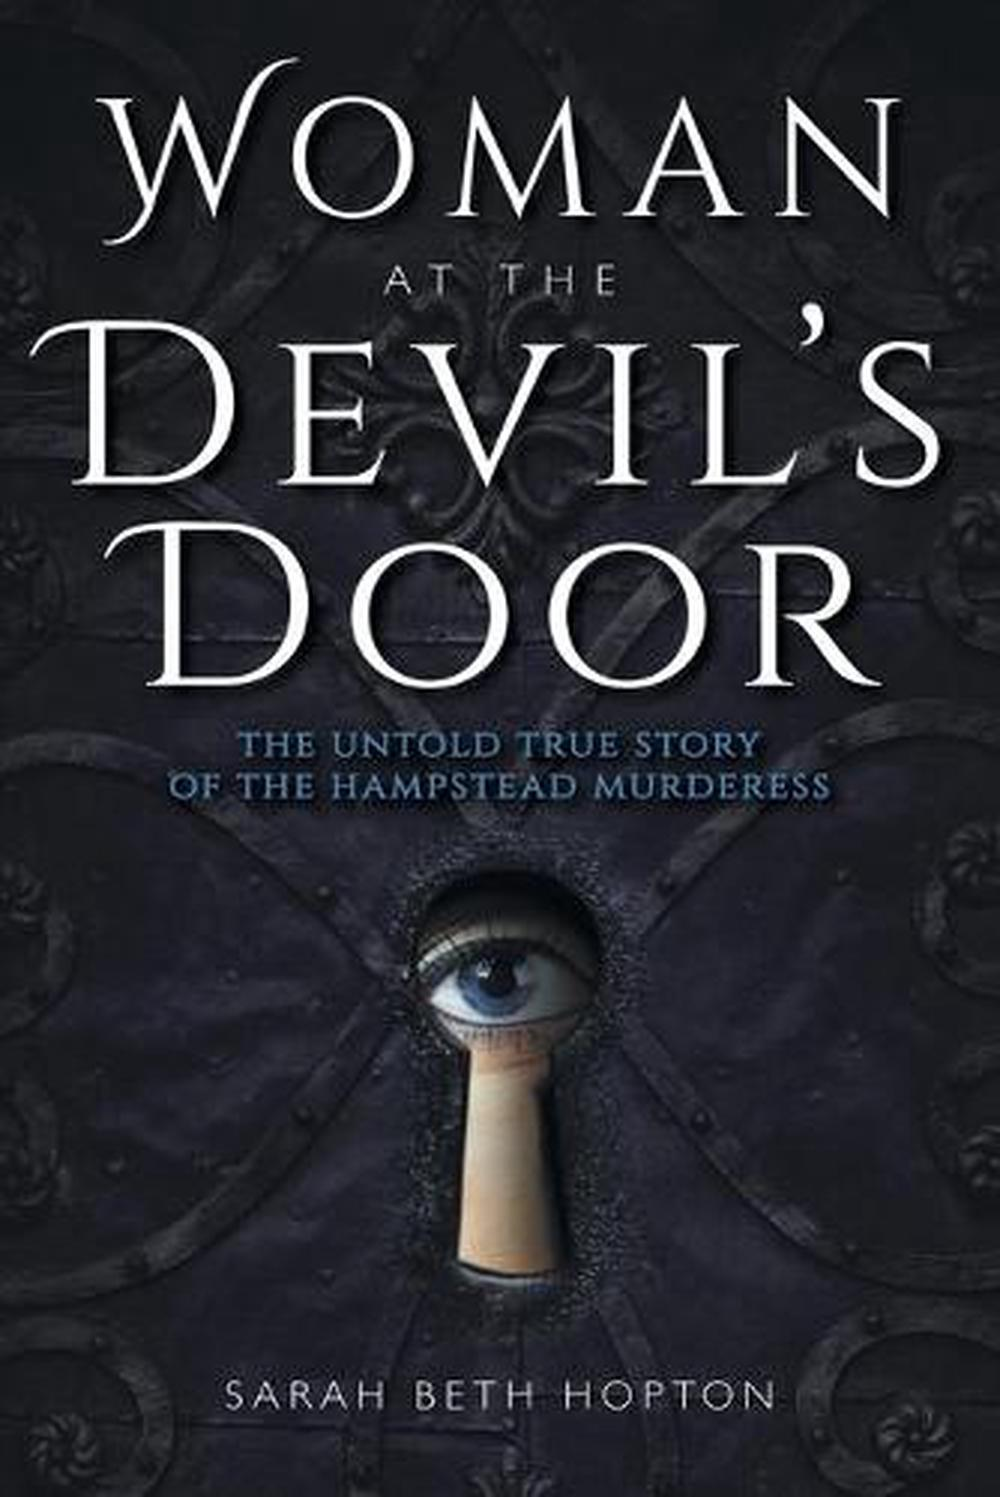 Woman at the Devil's DoorThe Untold True Story of the Hampstead Murderess